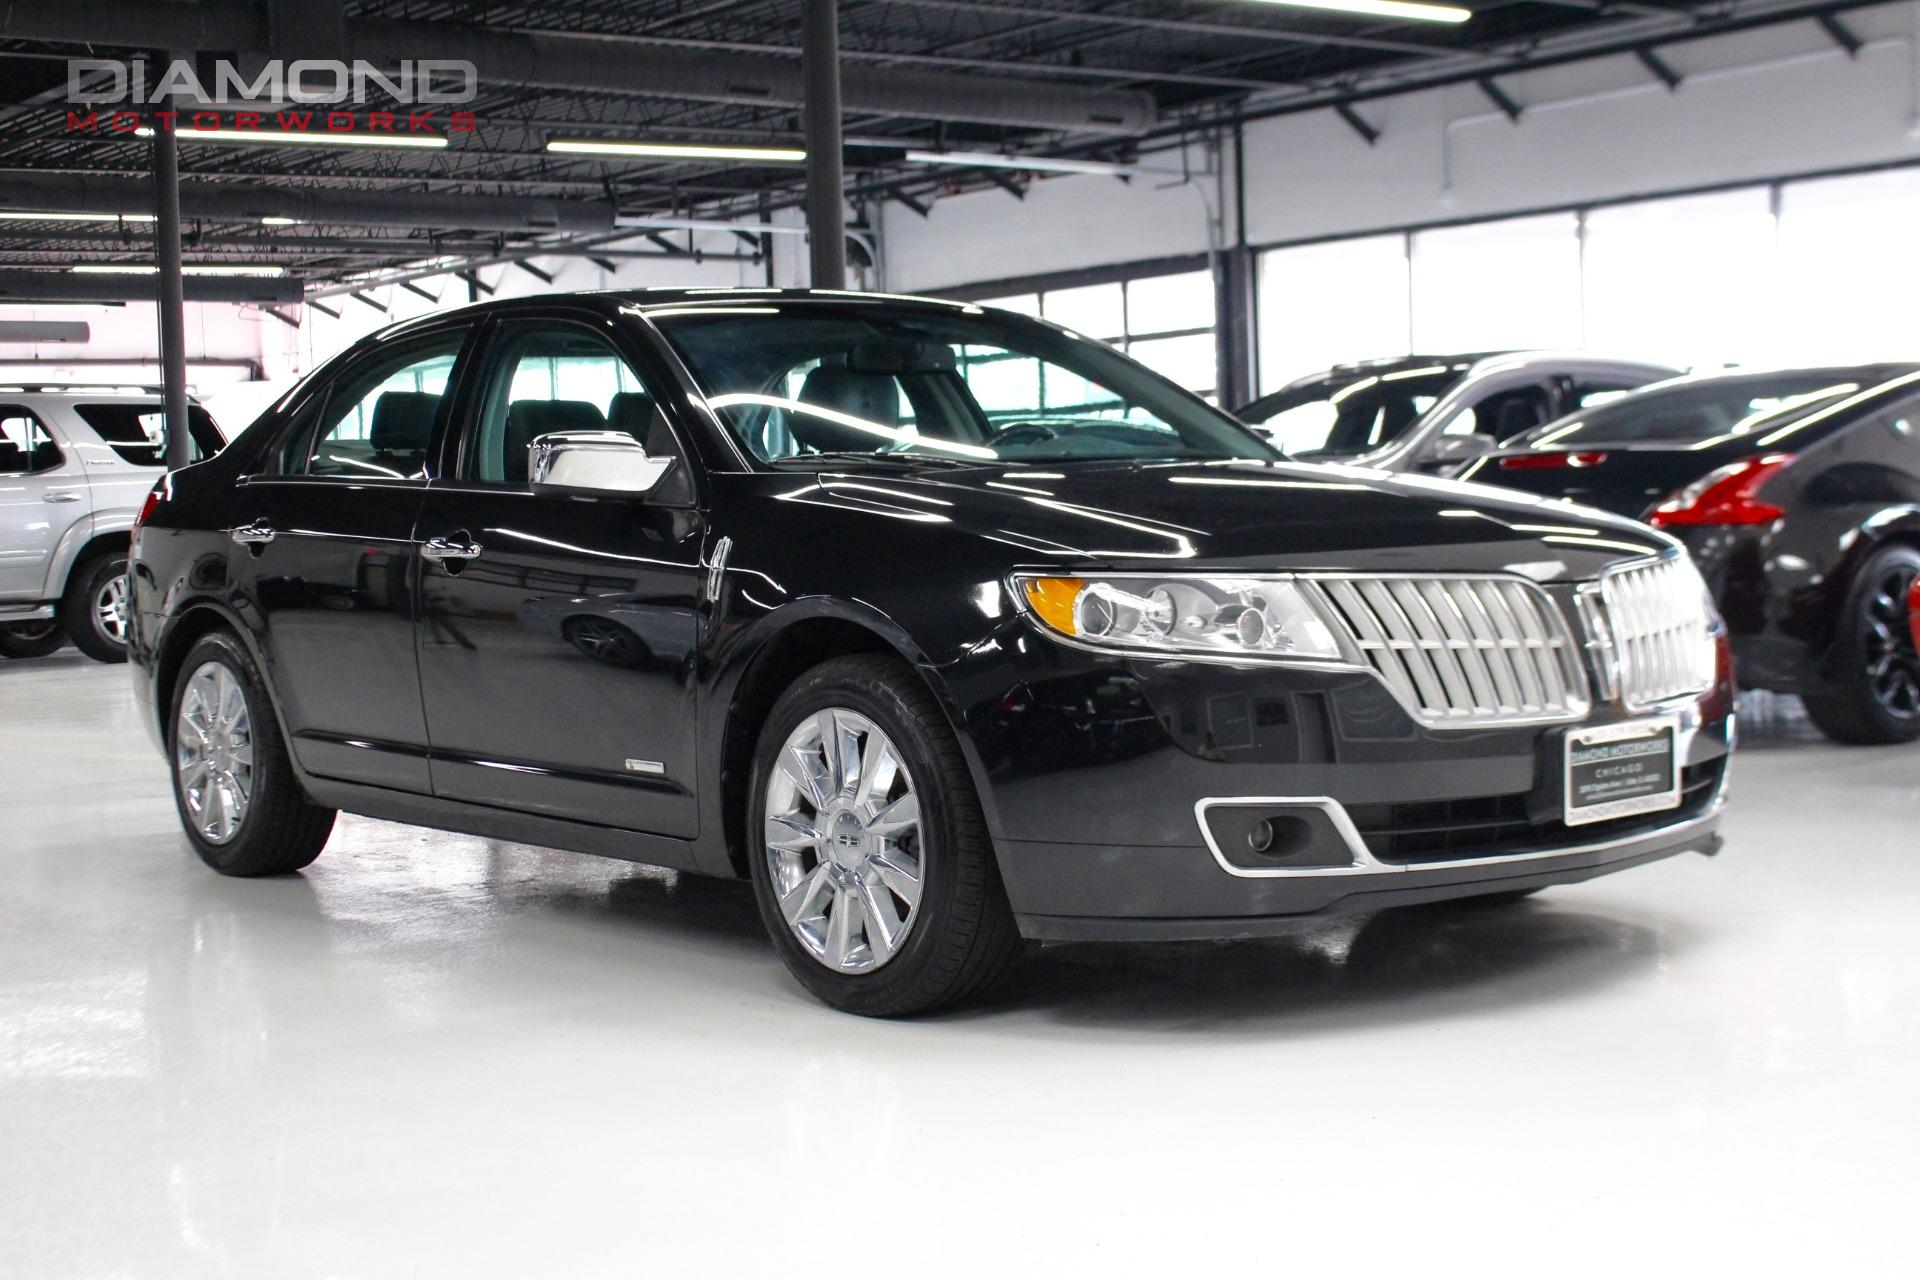 2012 lincoln mkz hybrid stock 836602 for sale near lisle. Black Bedroom Furniture Sets. Home Design Ideas